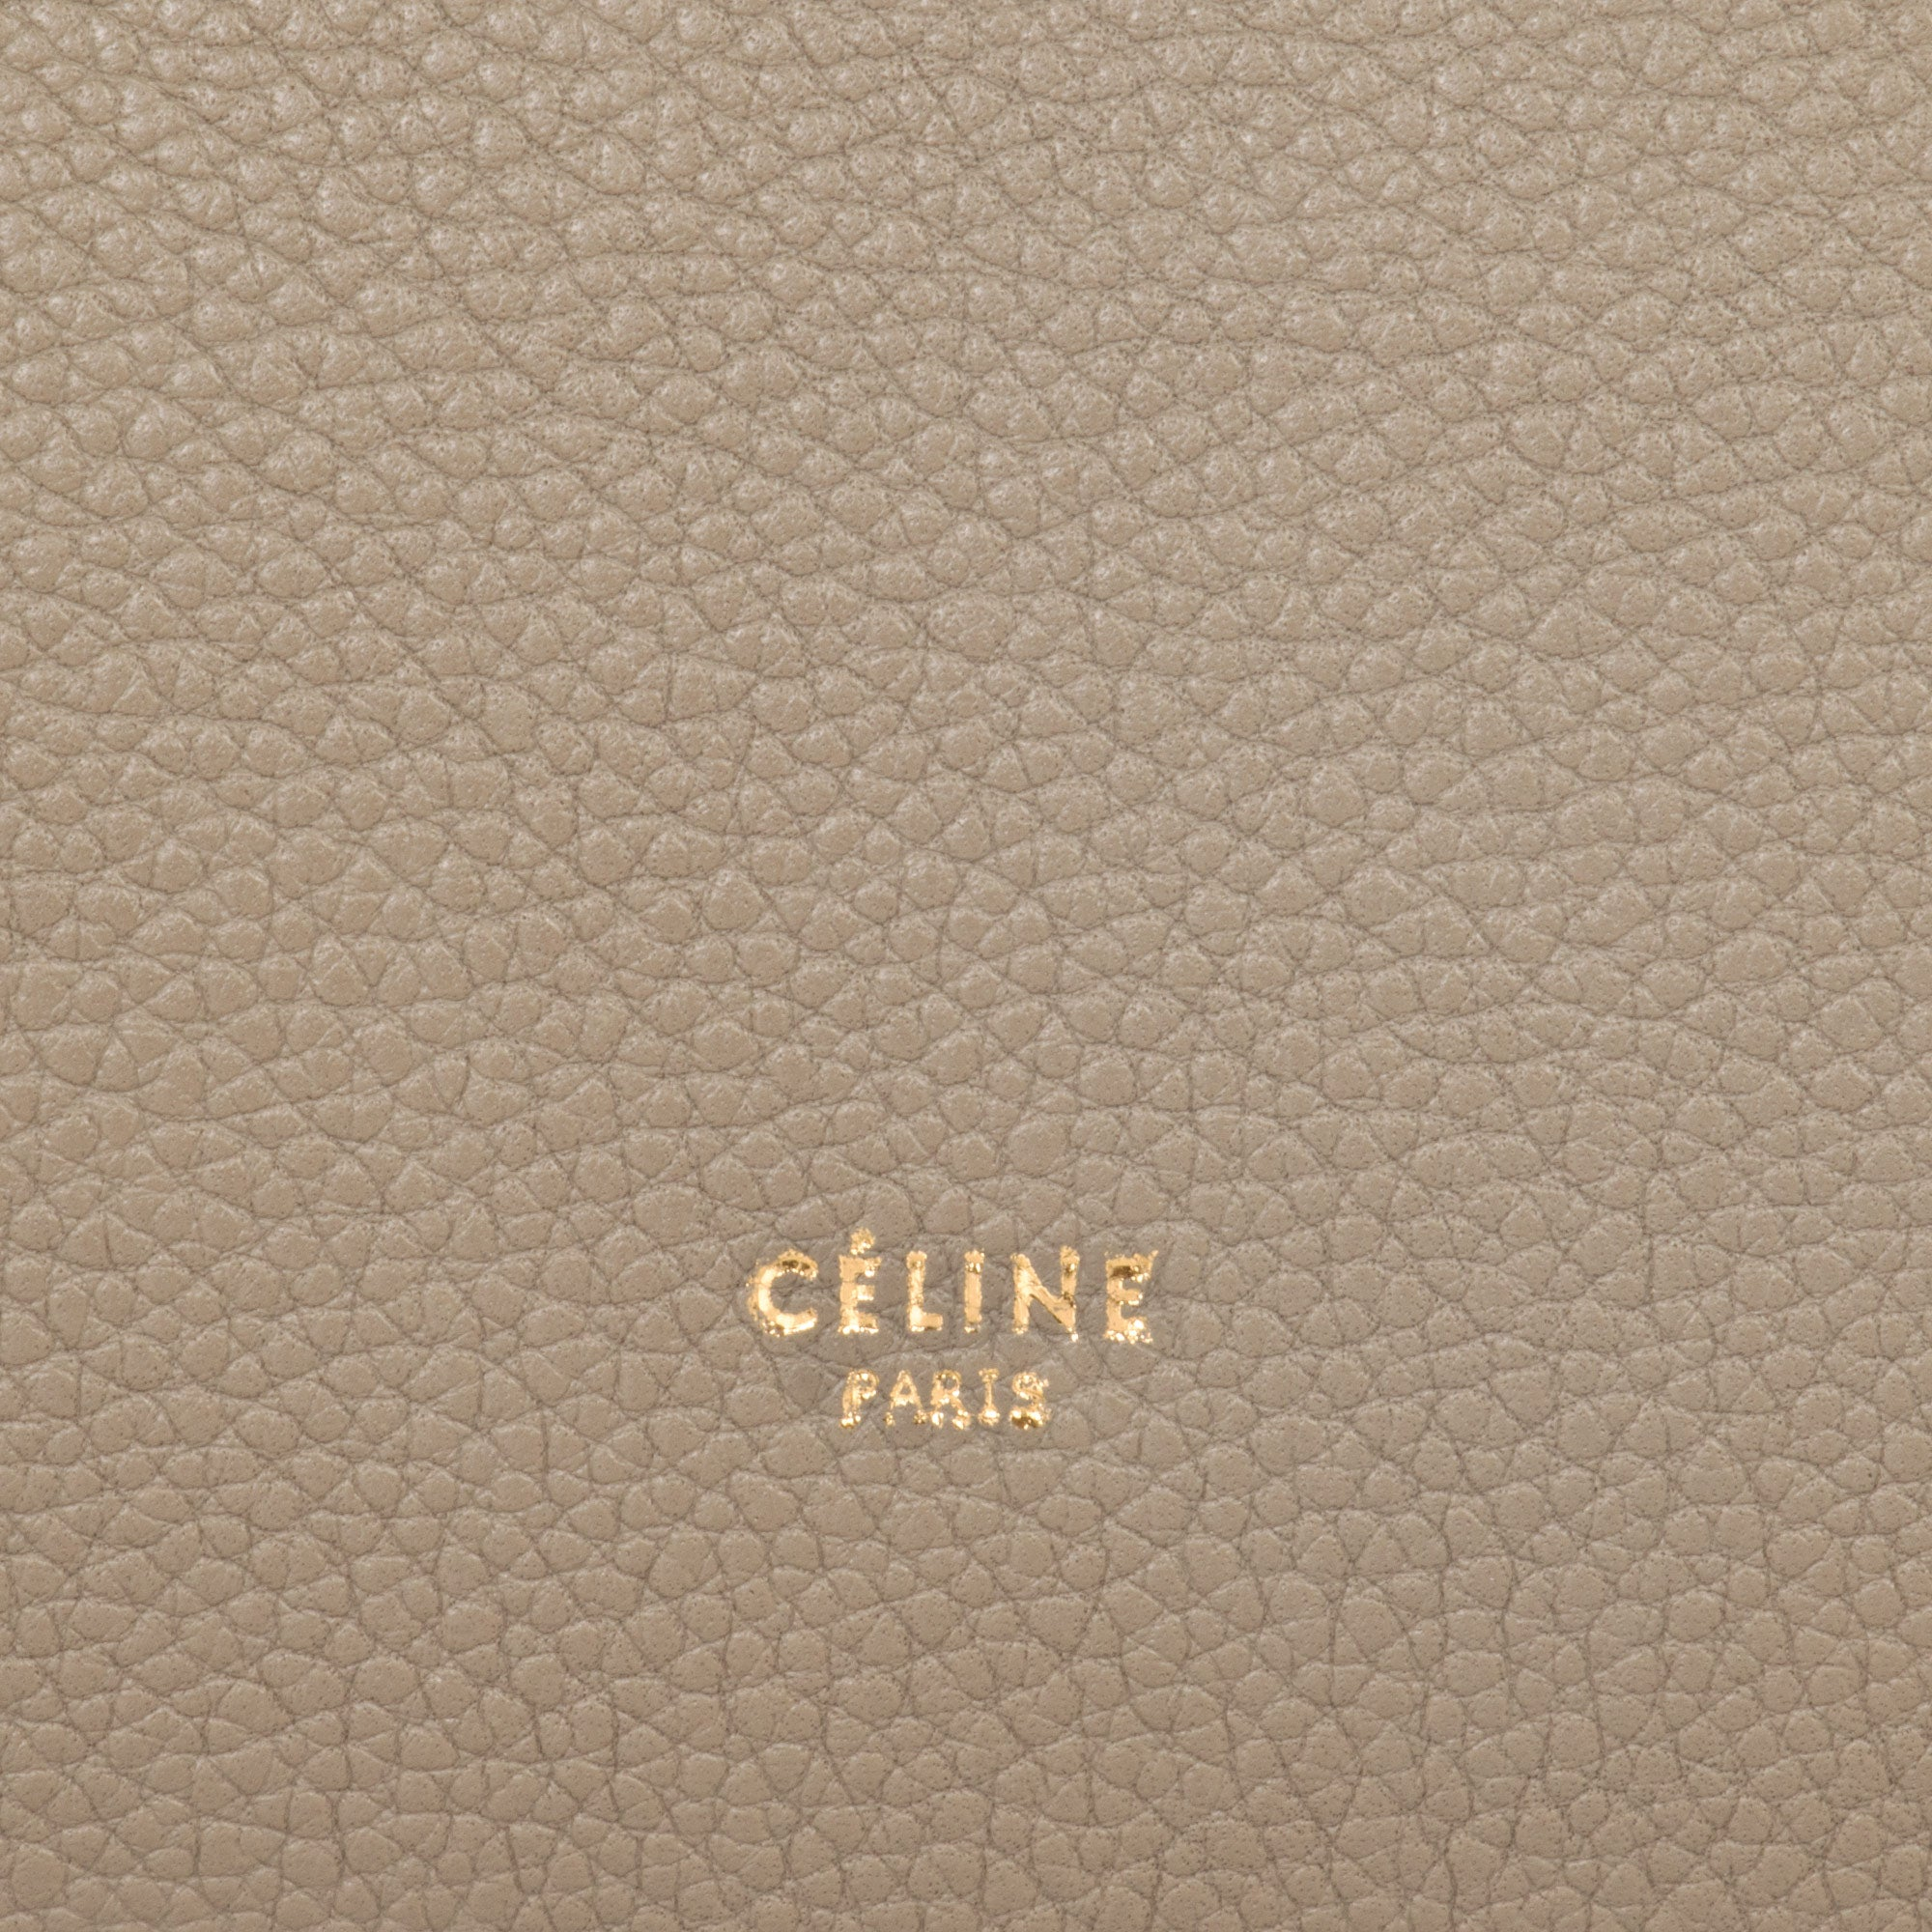 Celine Belt Bag | Dune (Charcoal) Grain | Medium